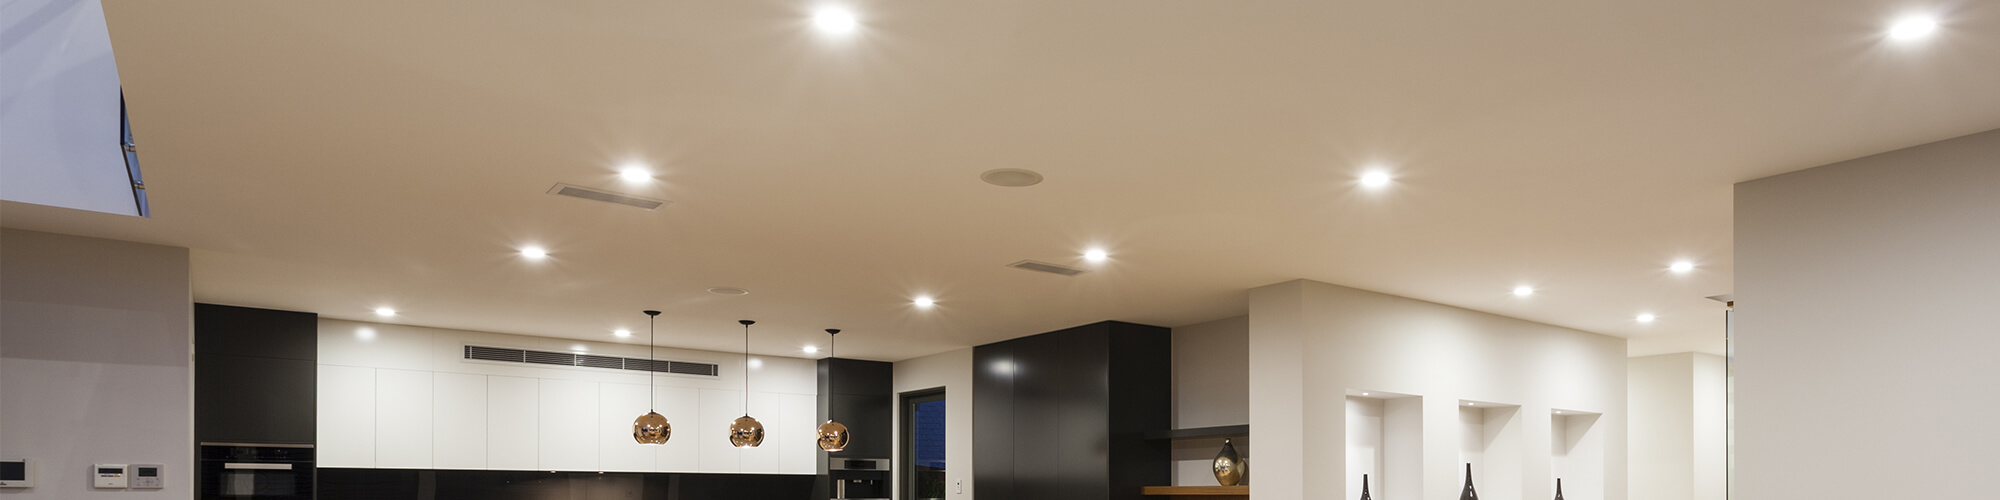 Shop Premium Recessed Lighting at The Home Depot